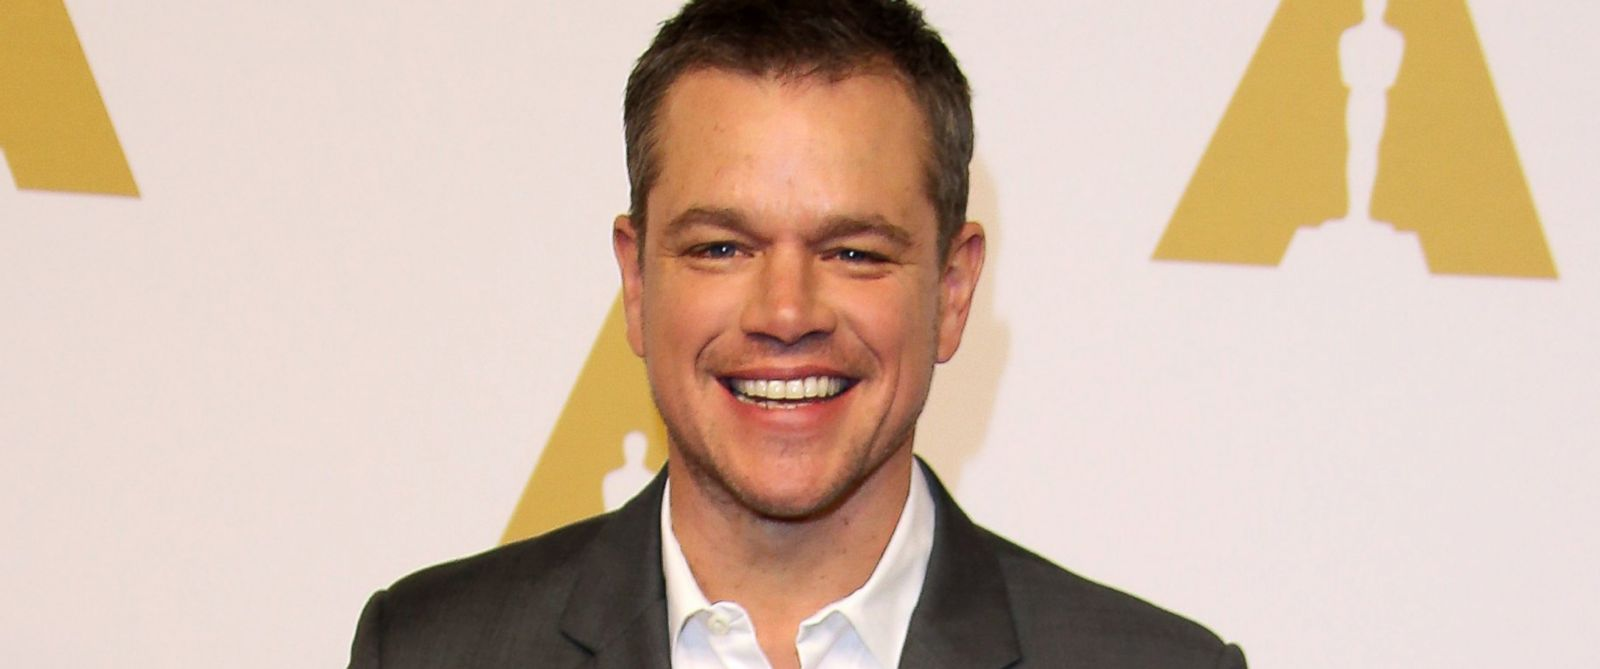 PHOTO: Matt Damon attends the 88th Annual Academy Awards Nominee Luncheon, Feb. 8, 2016, in Beverly Hills, Calif.